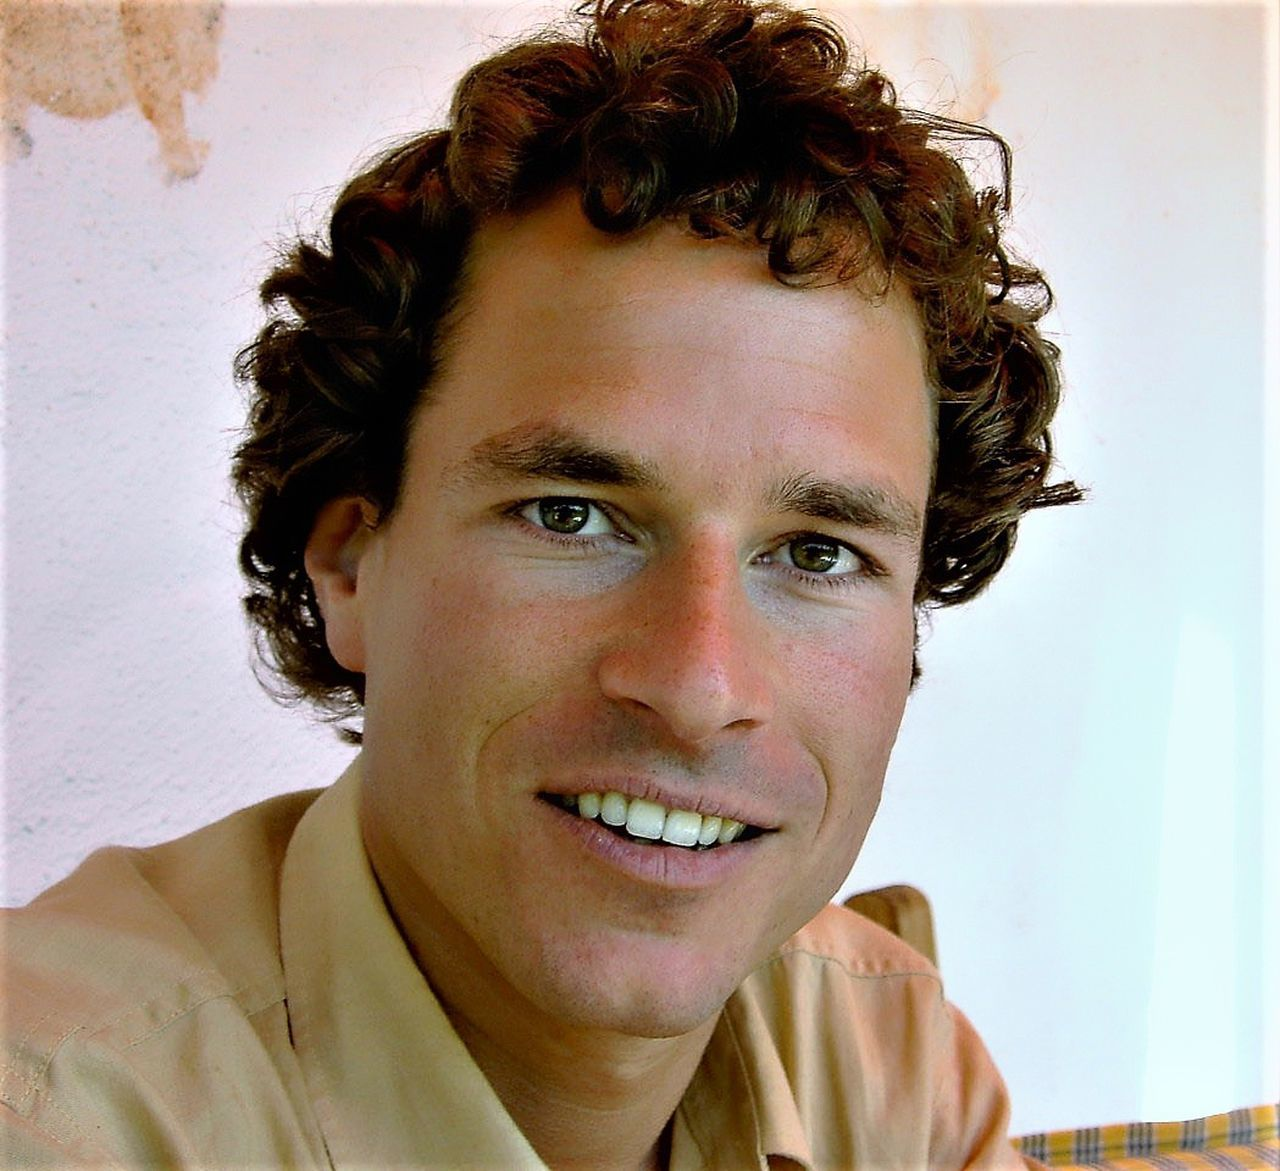 PORTRAIT OF SMILING MAN AT HOME